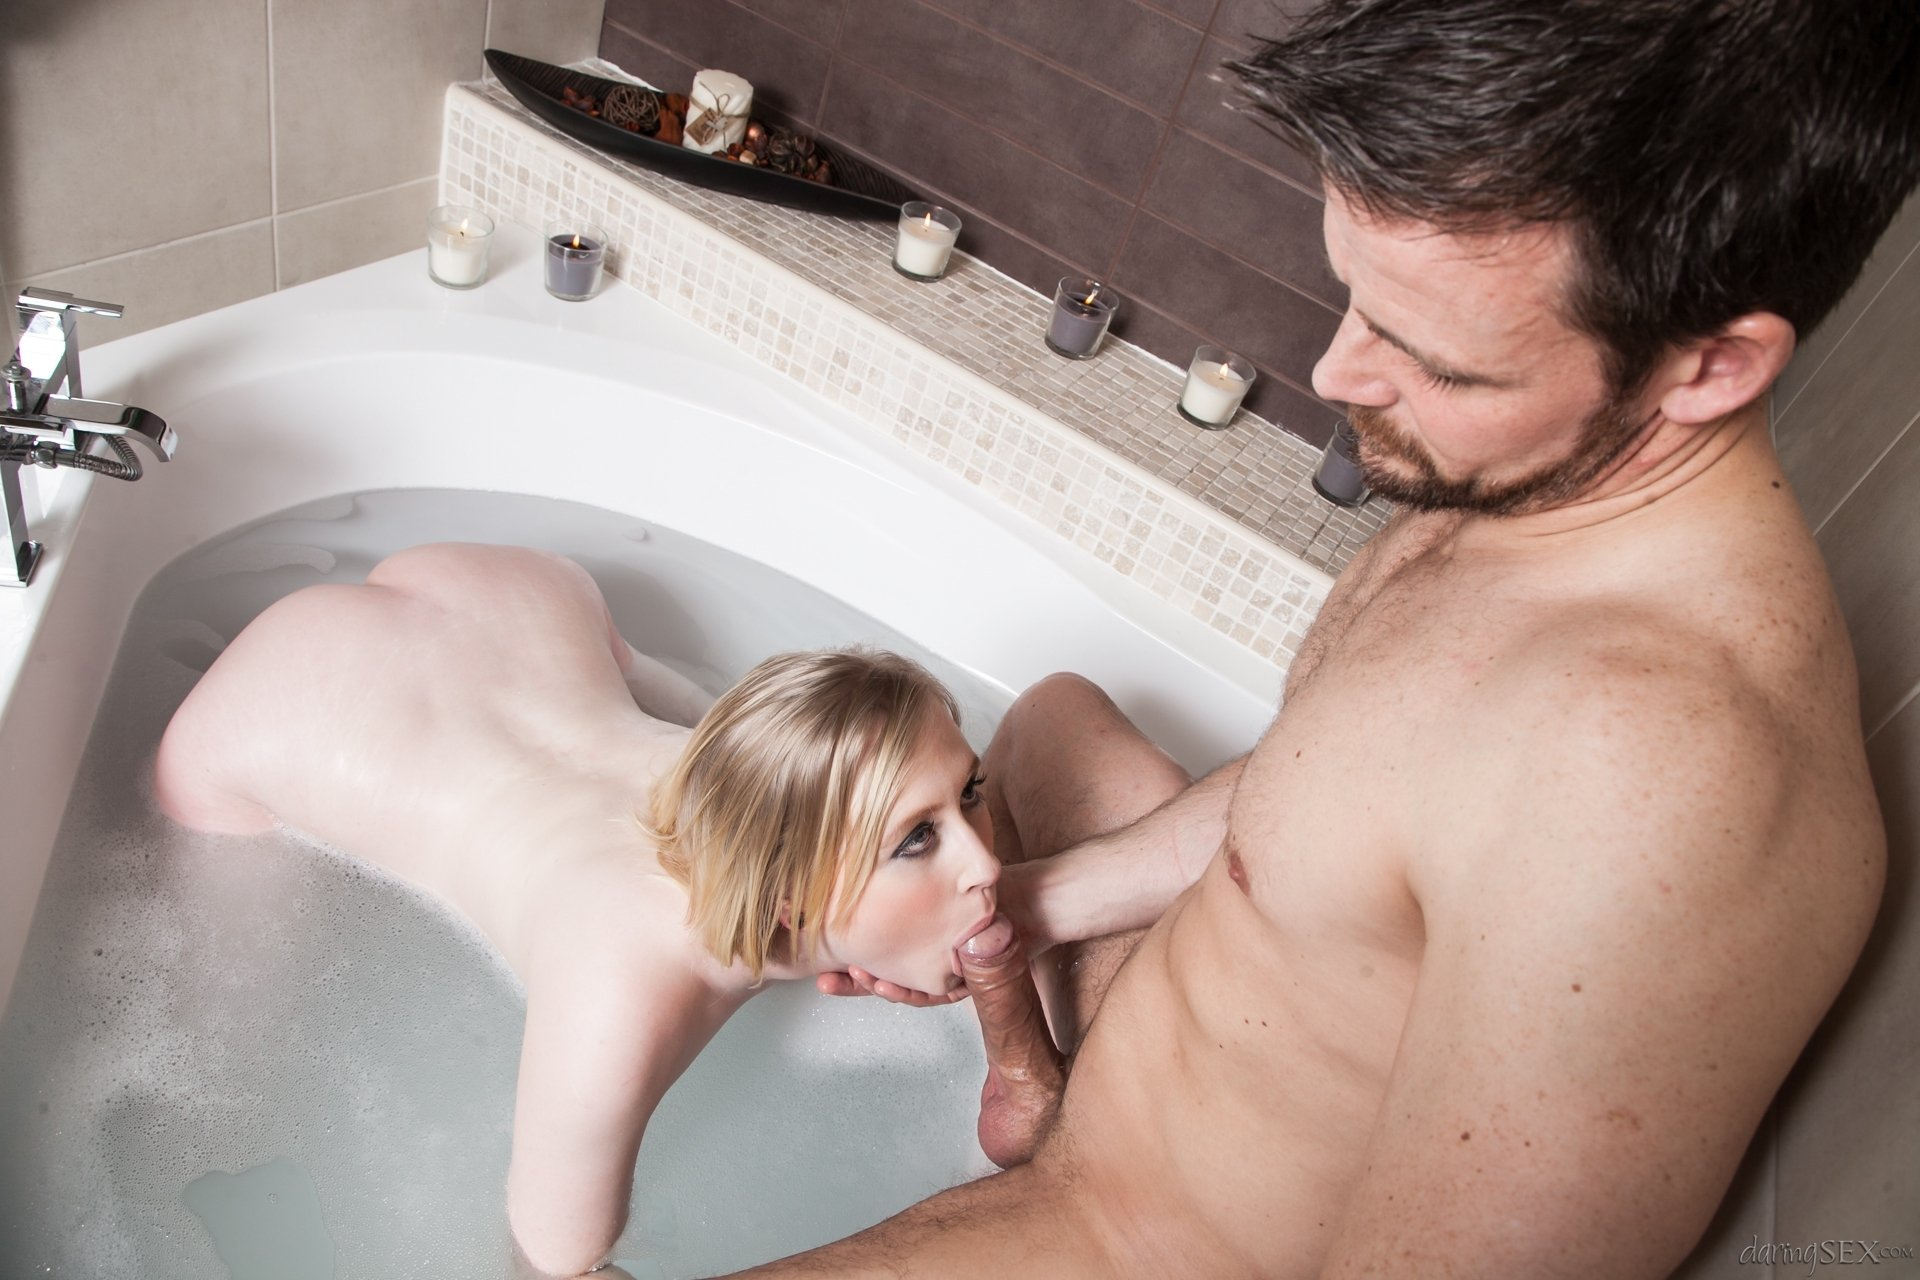 Bathtub sex 4